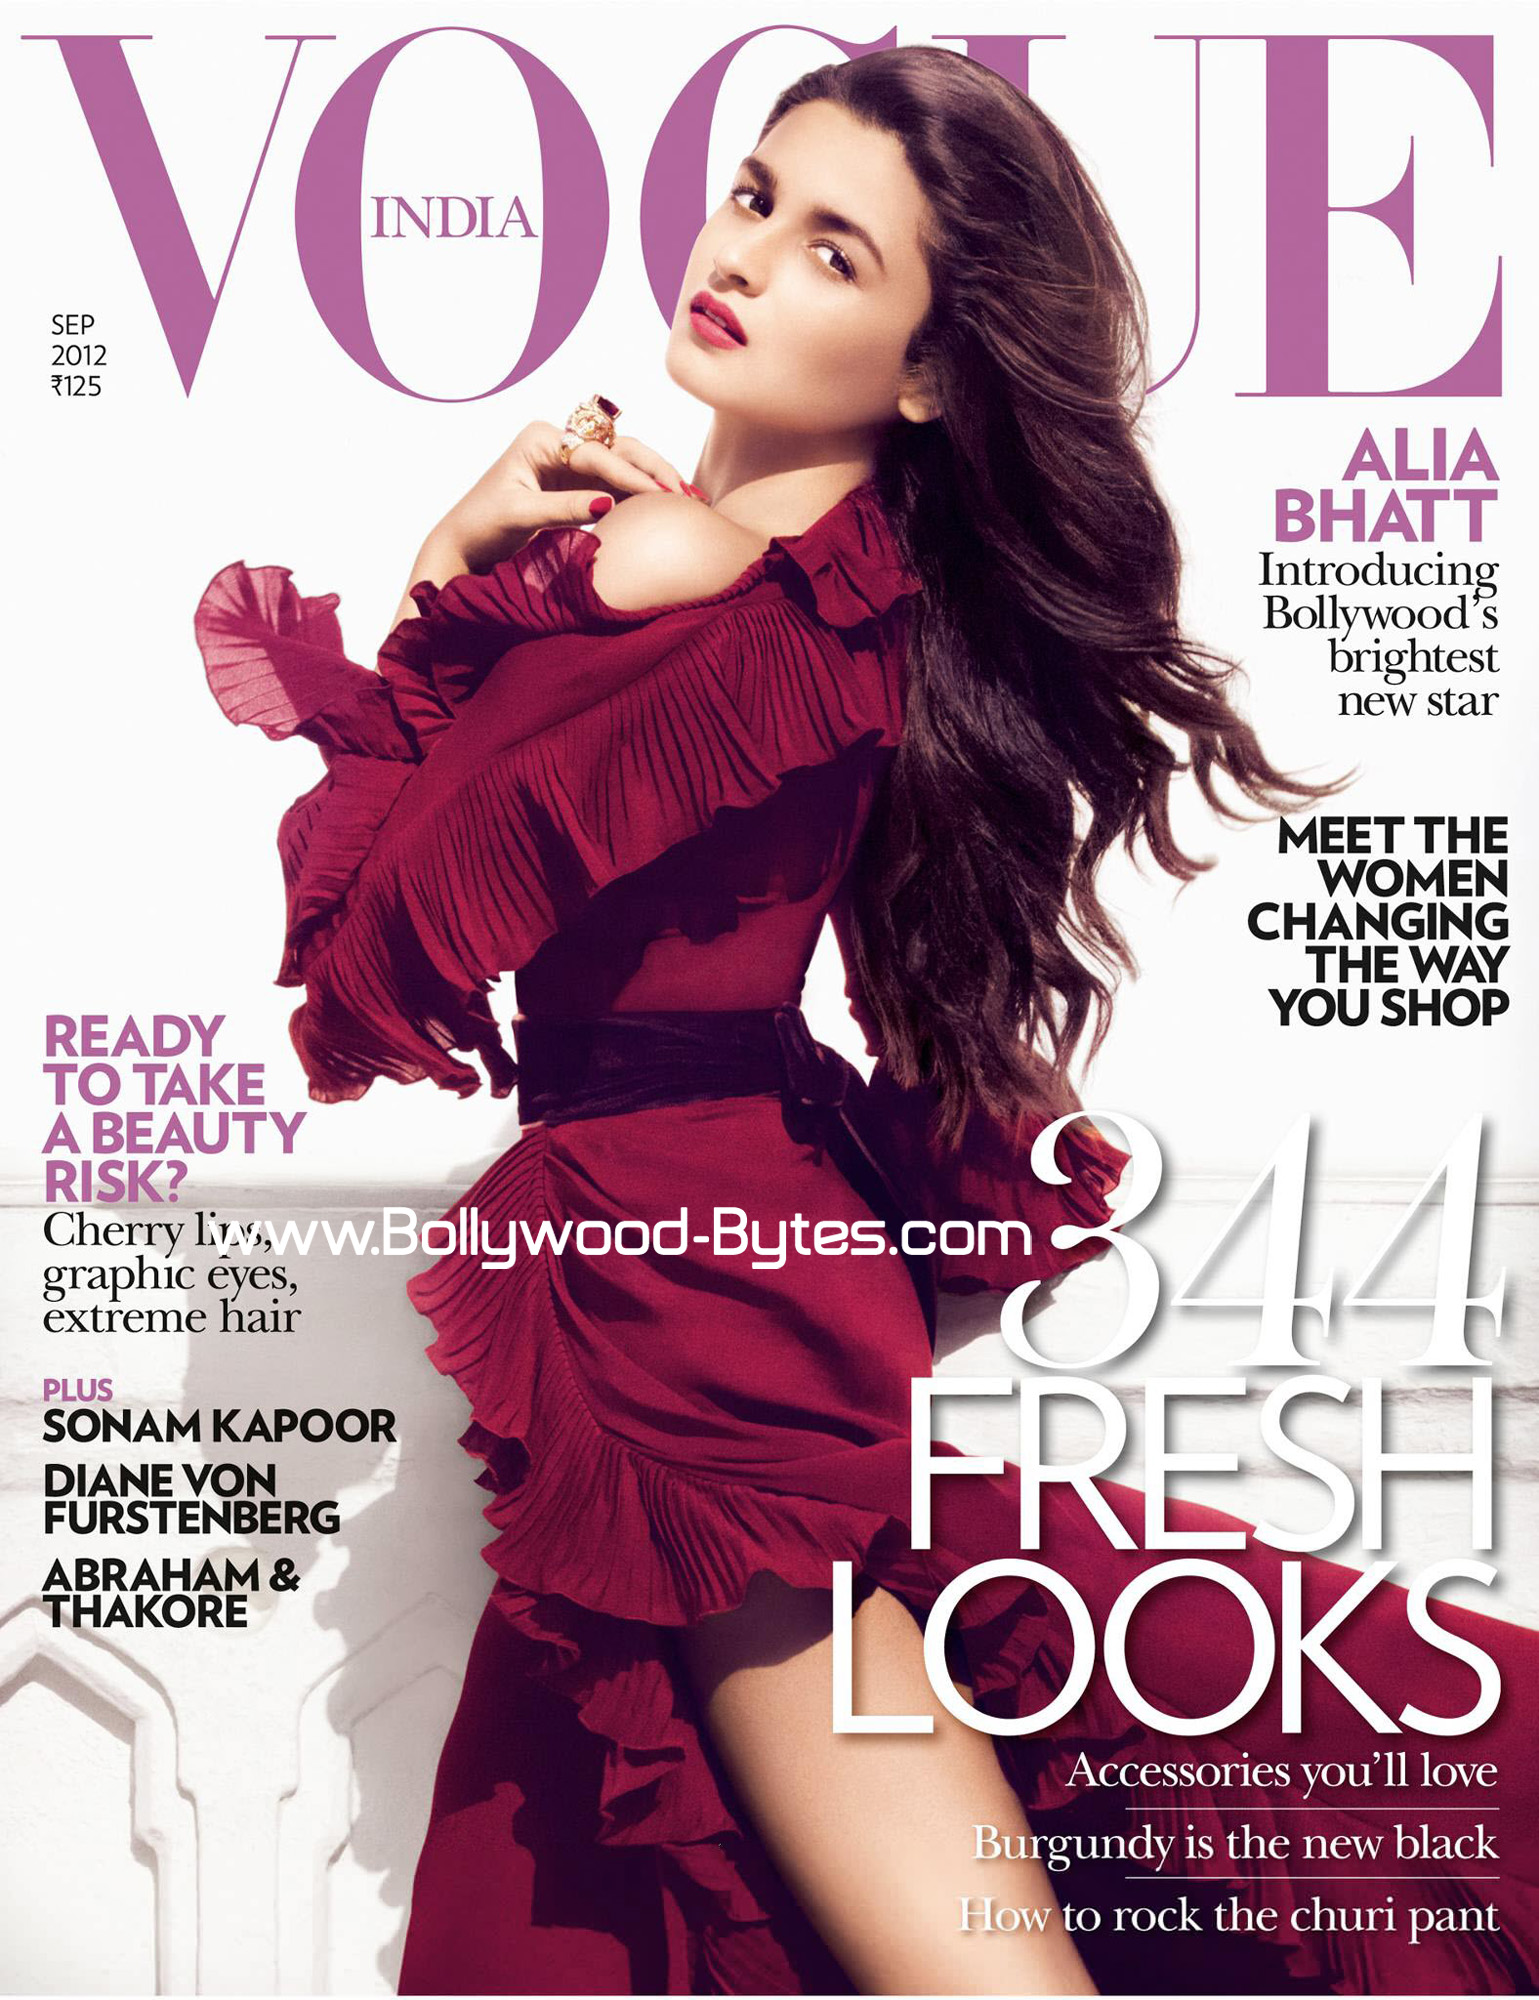 http://3.bp.blogspot.com/-gSCt_QZl42A/UETBX88XIZI/AAAAAAAAOWw/1AofWIGdmno/s2000/Hot-Alia-Bhatt-On-the-cover-Vogue-India-Magazine-September-2012.jpg